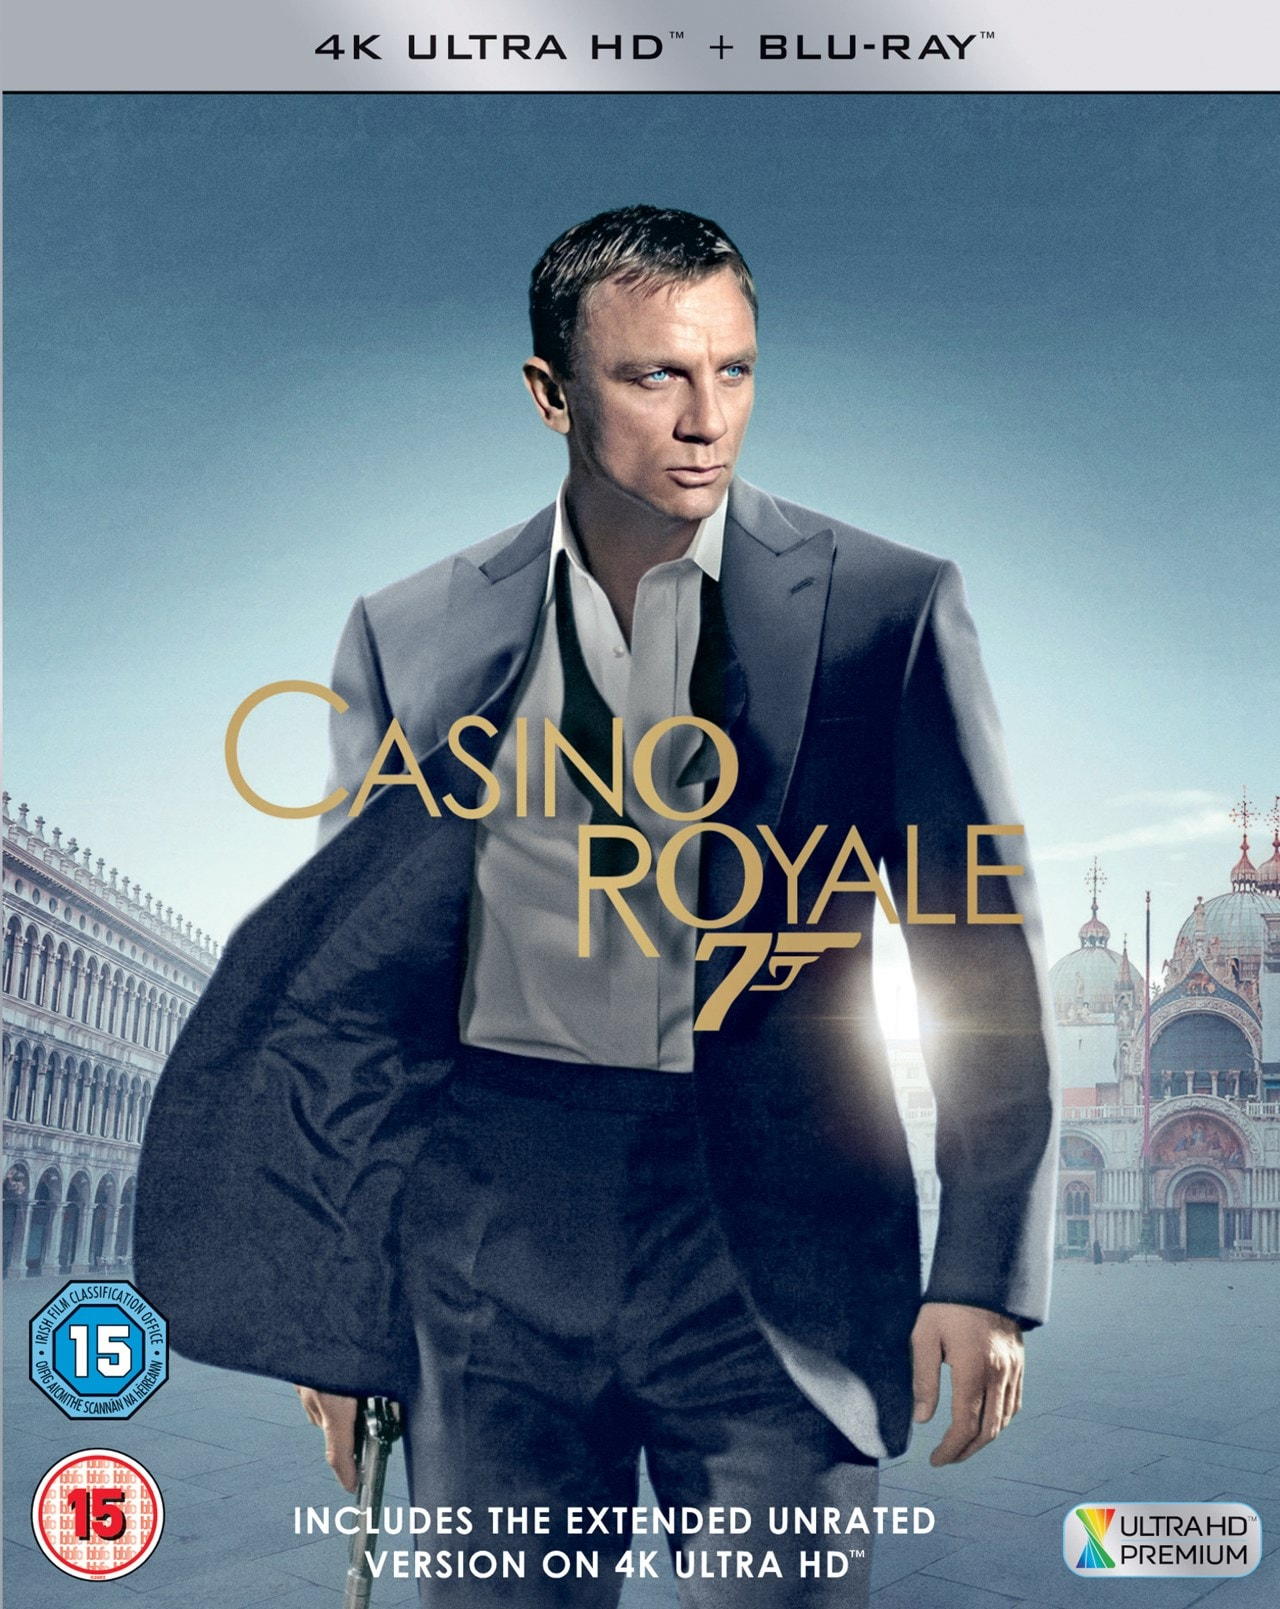 Casino Royale Movie Watch Online Hd